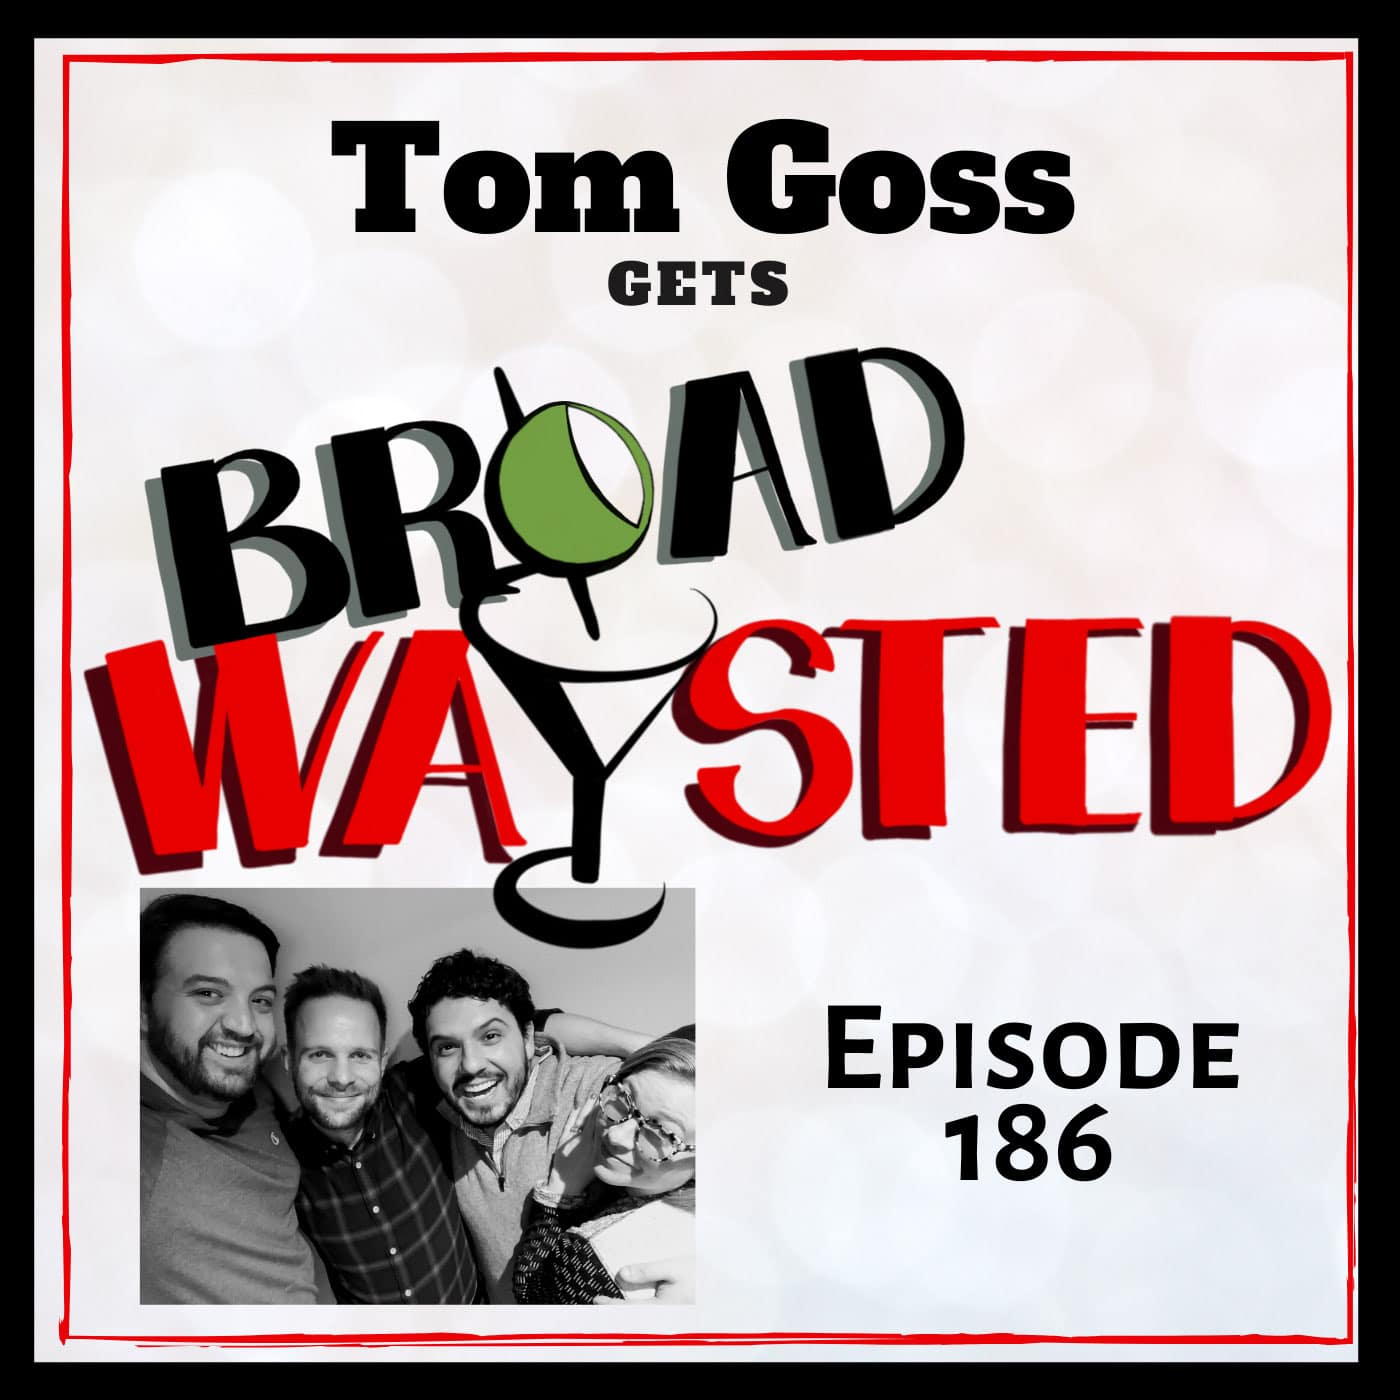 Broadwaysted Episode 186 Tom Goss